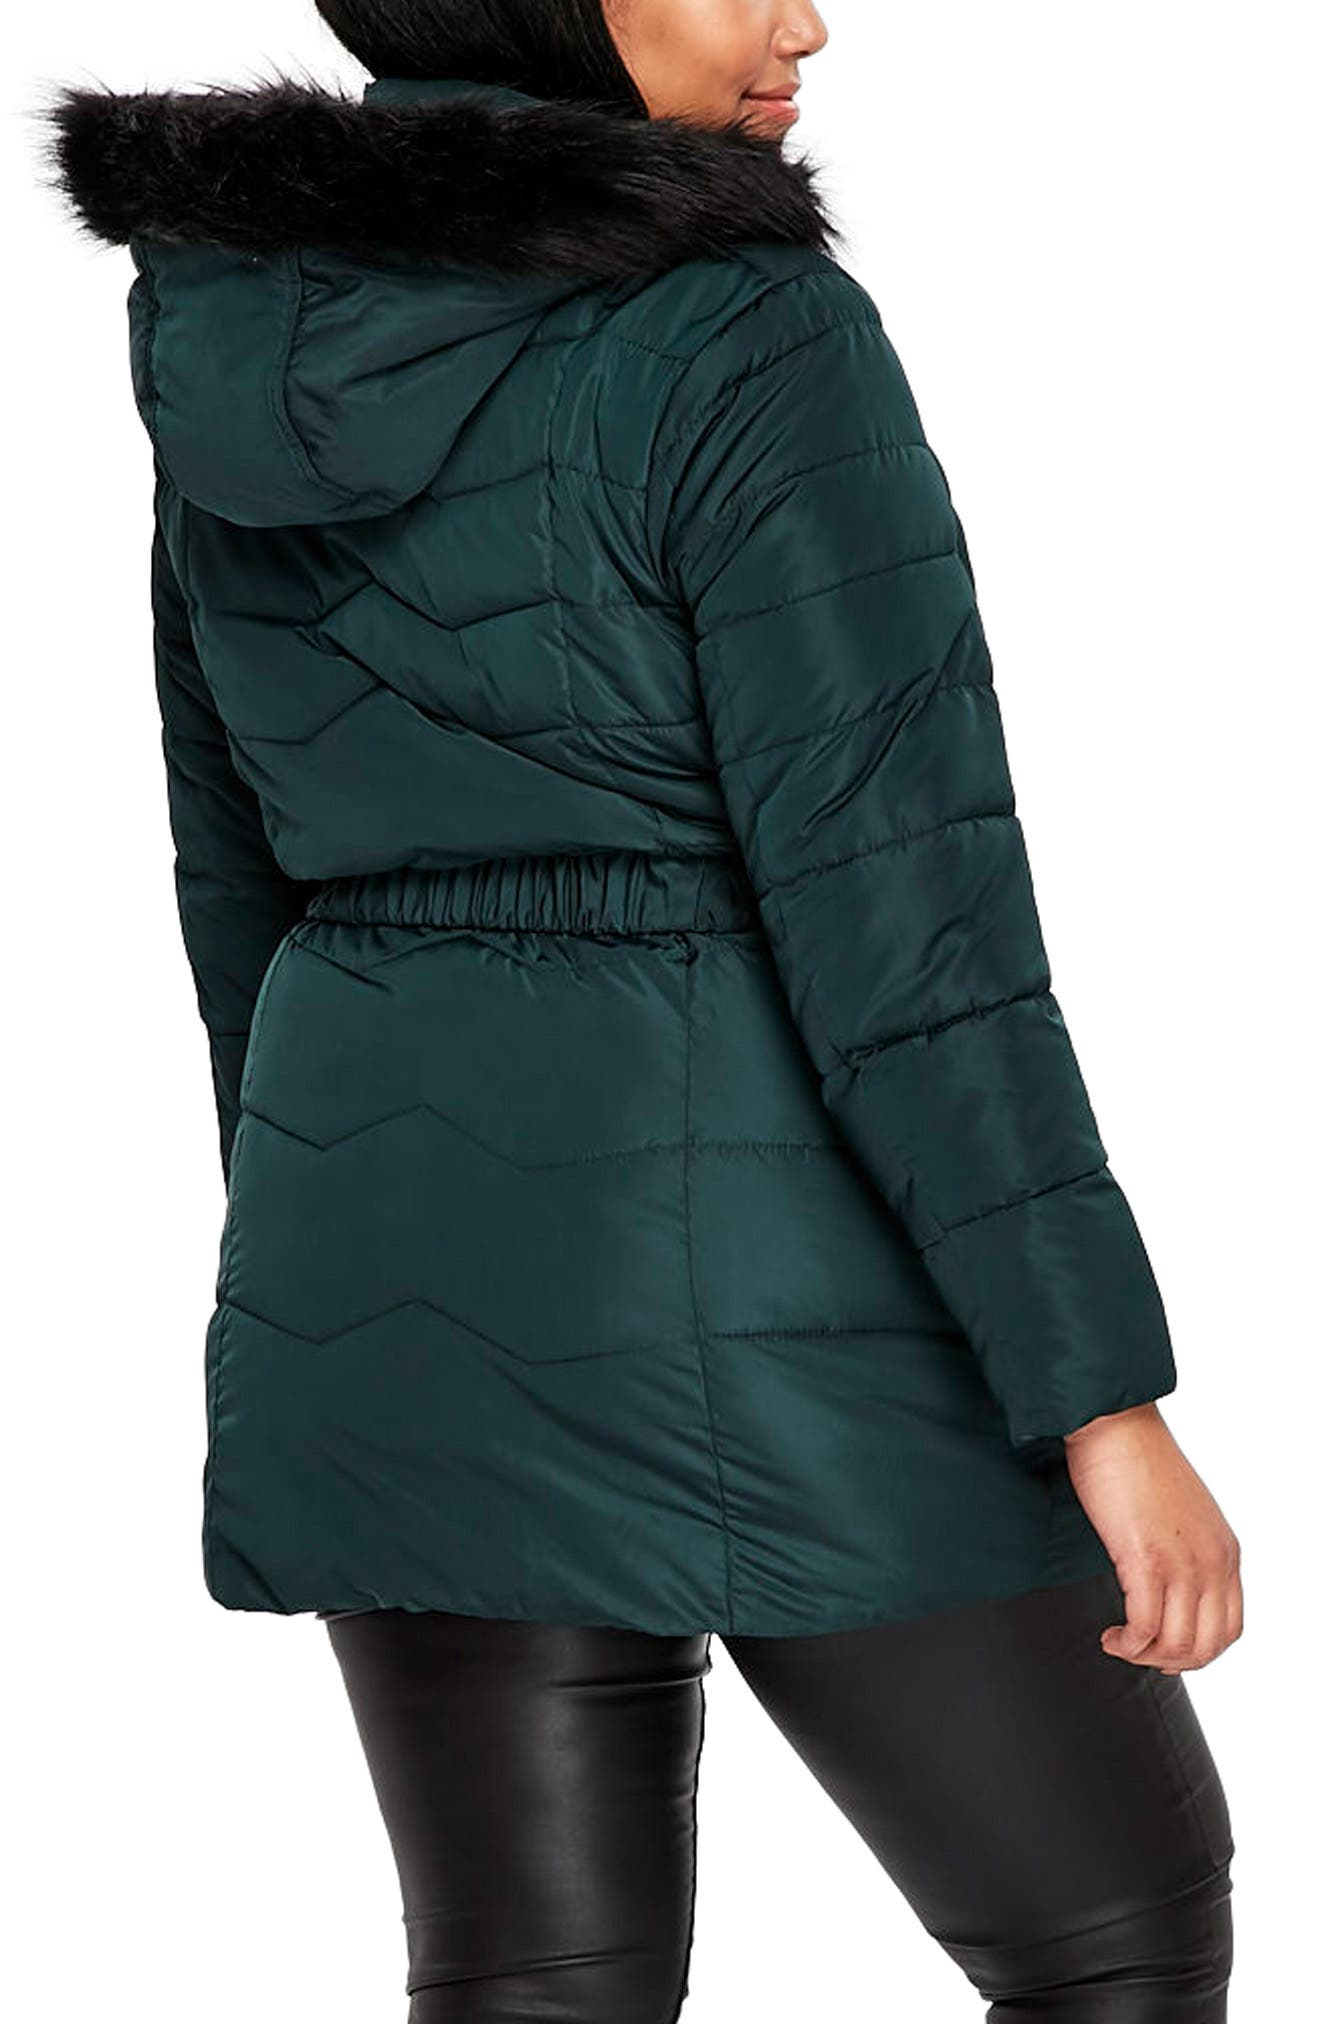 Padded Coat with Faux Fur Trim,                             Alternate thumbnail 2, color,                             300